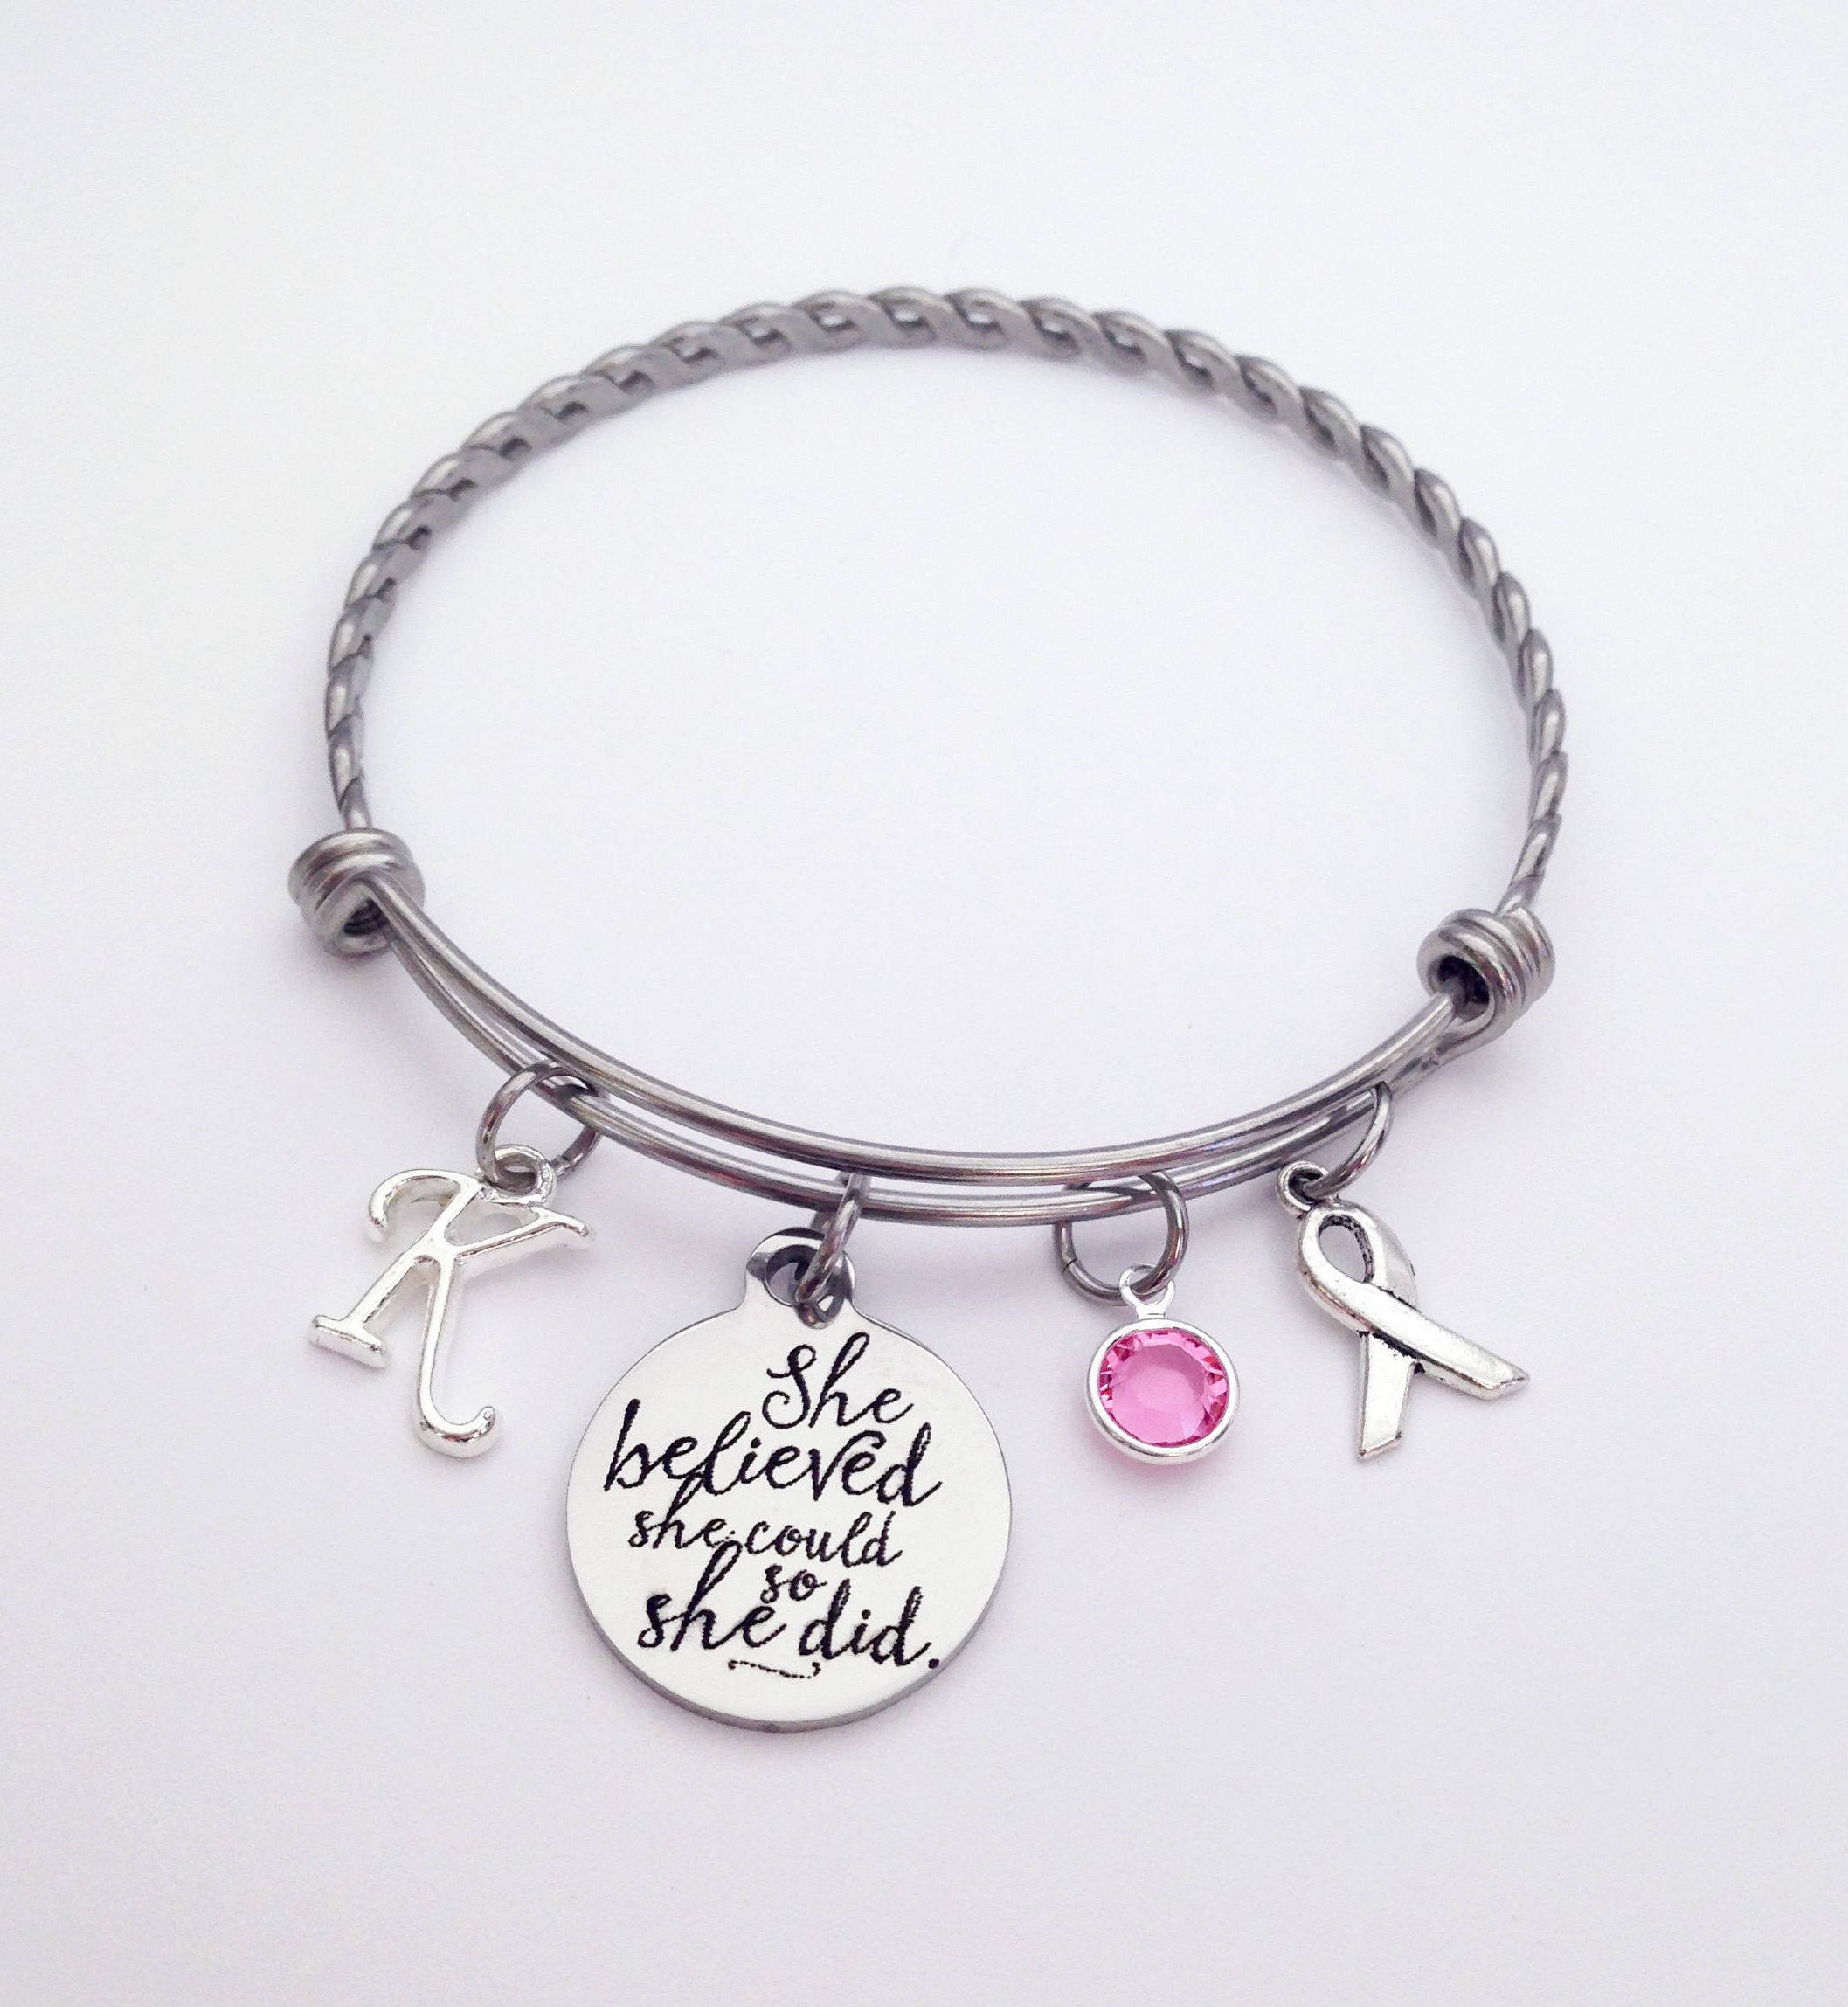 alzheimer alzheimers family choose awareness customizable member bracelet mom products s